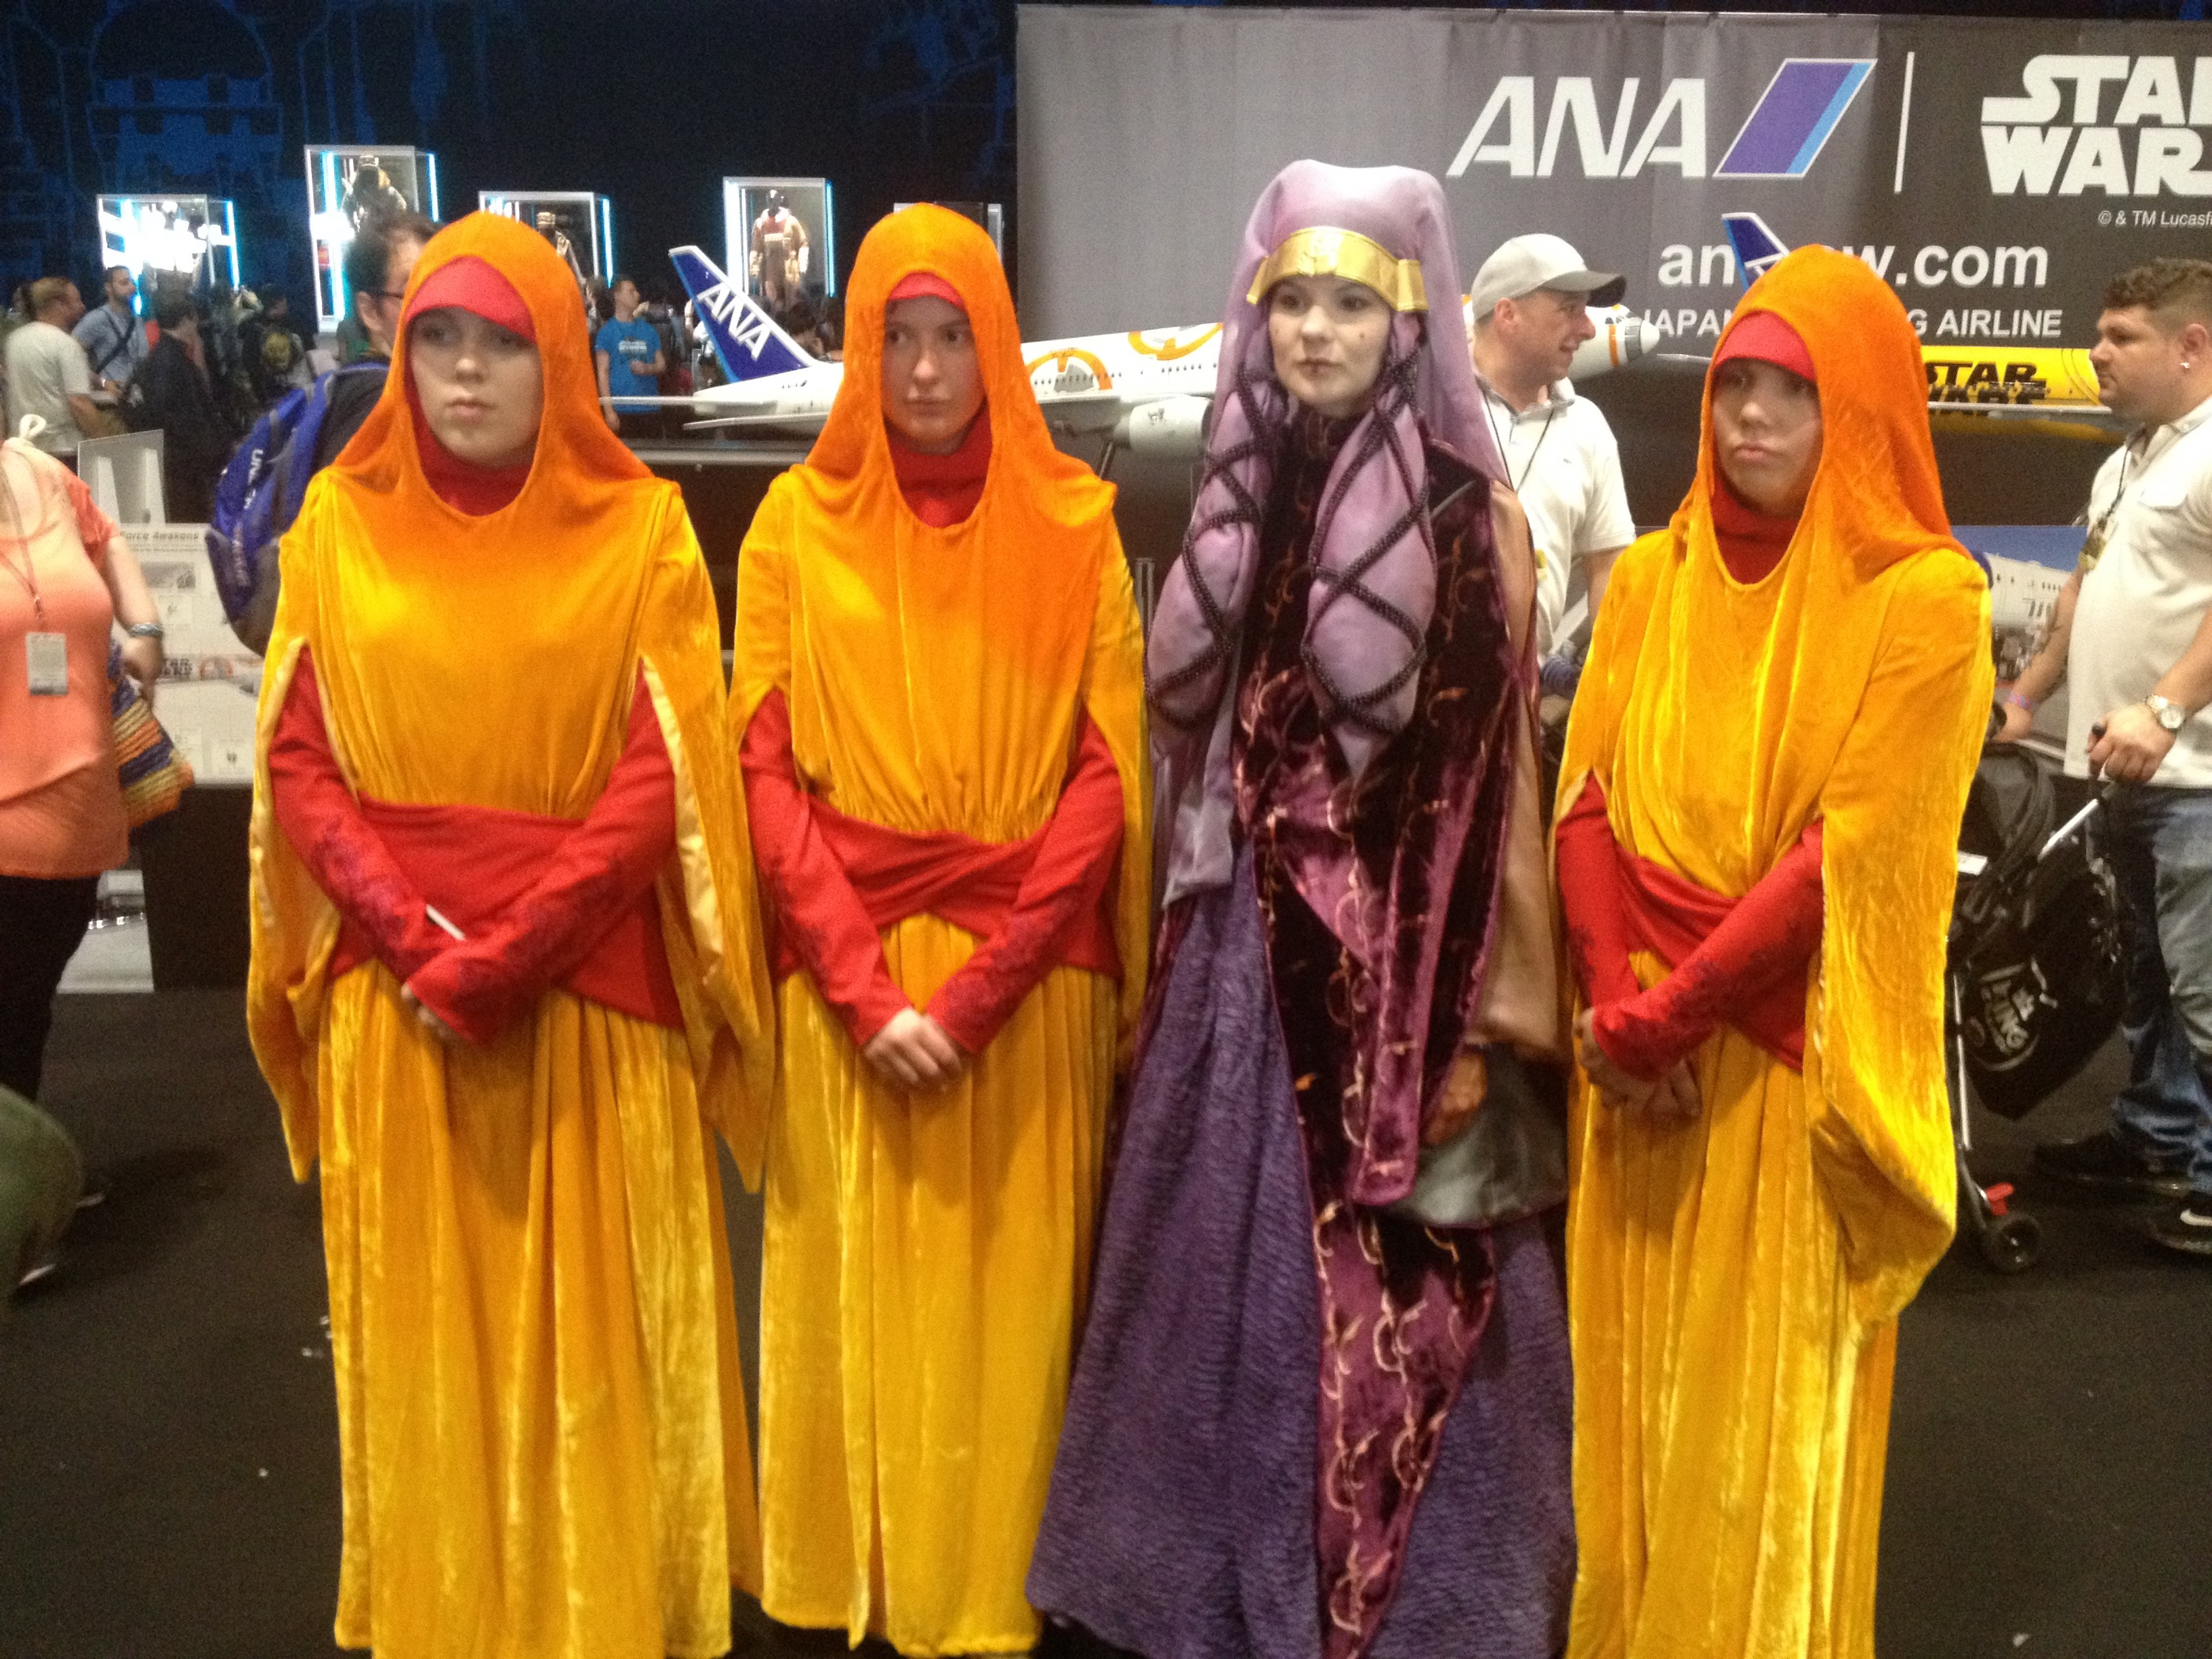 Star Wars Celebration Cosplay and Exposition 8